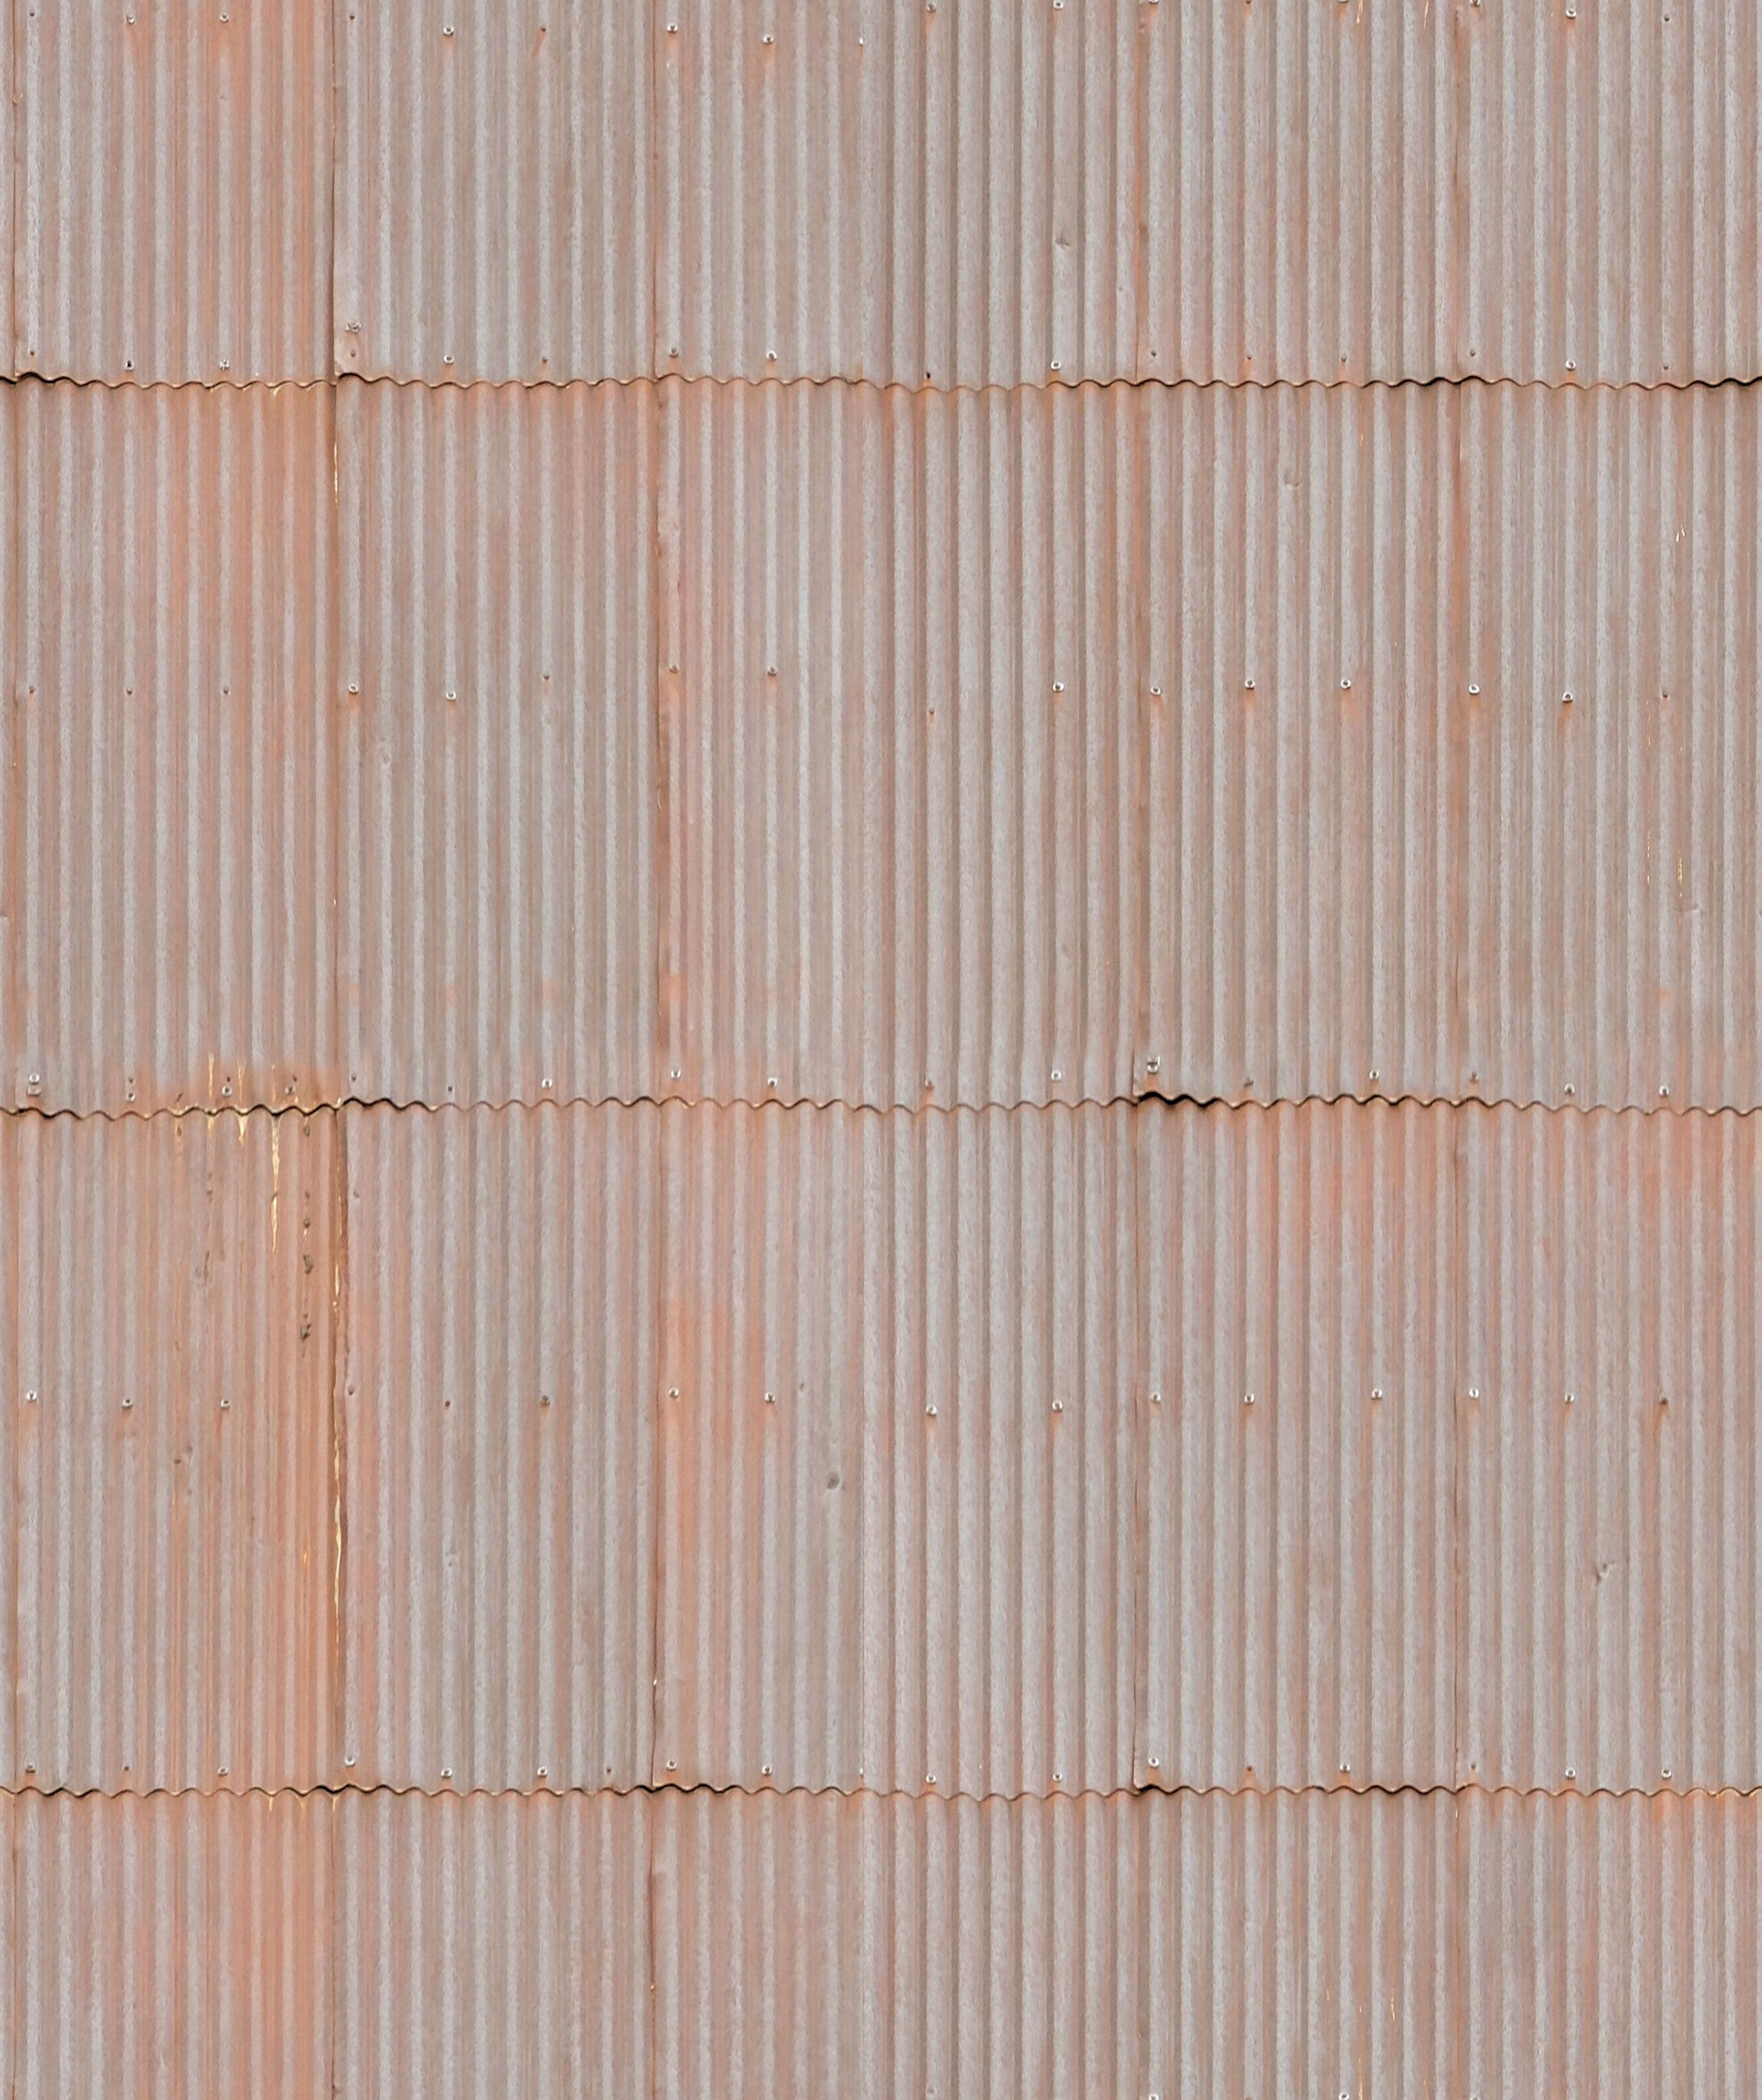 Rusted Tin Roof Seamless Texture Materials Textures